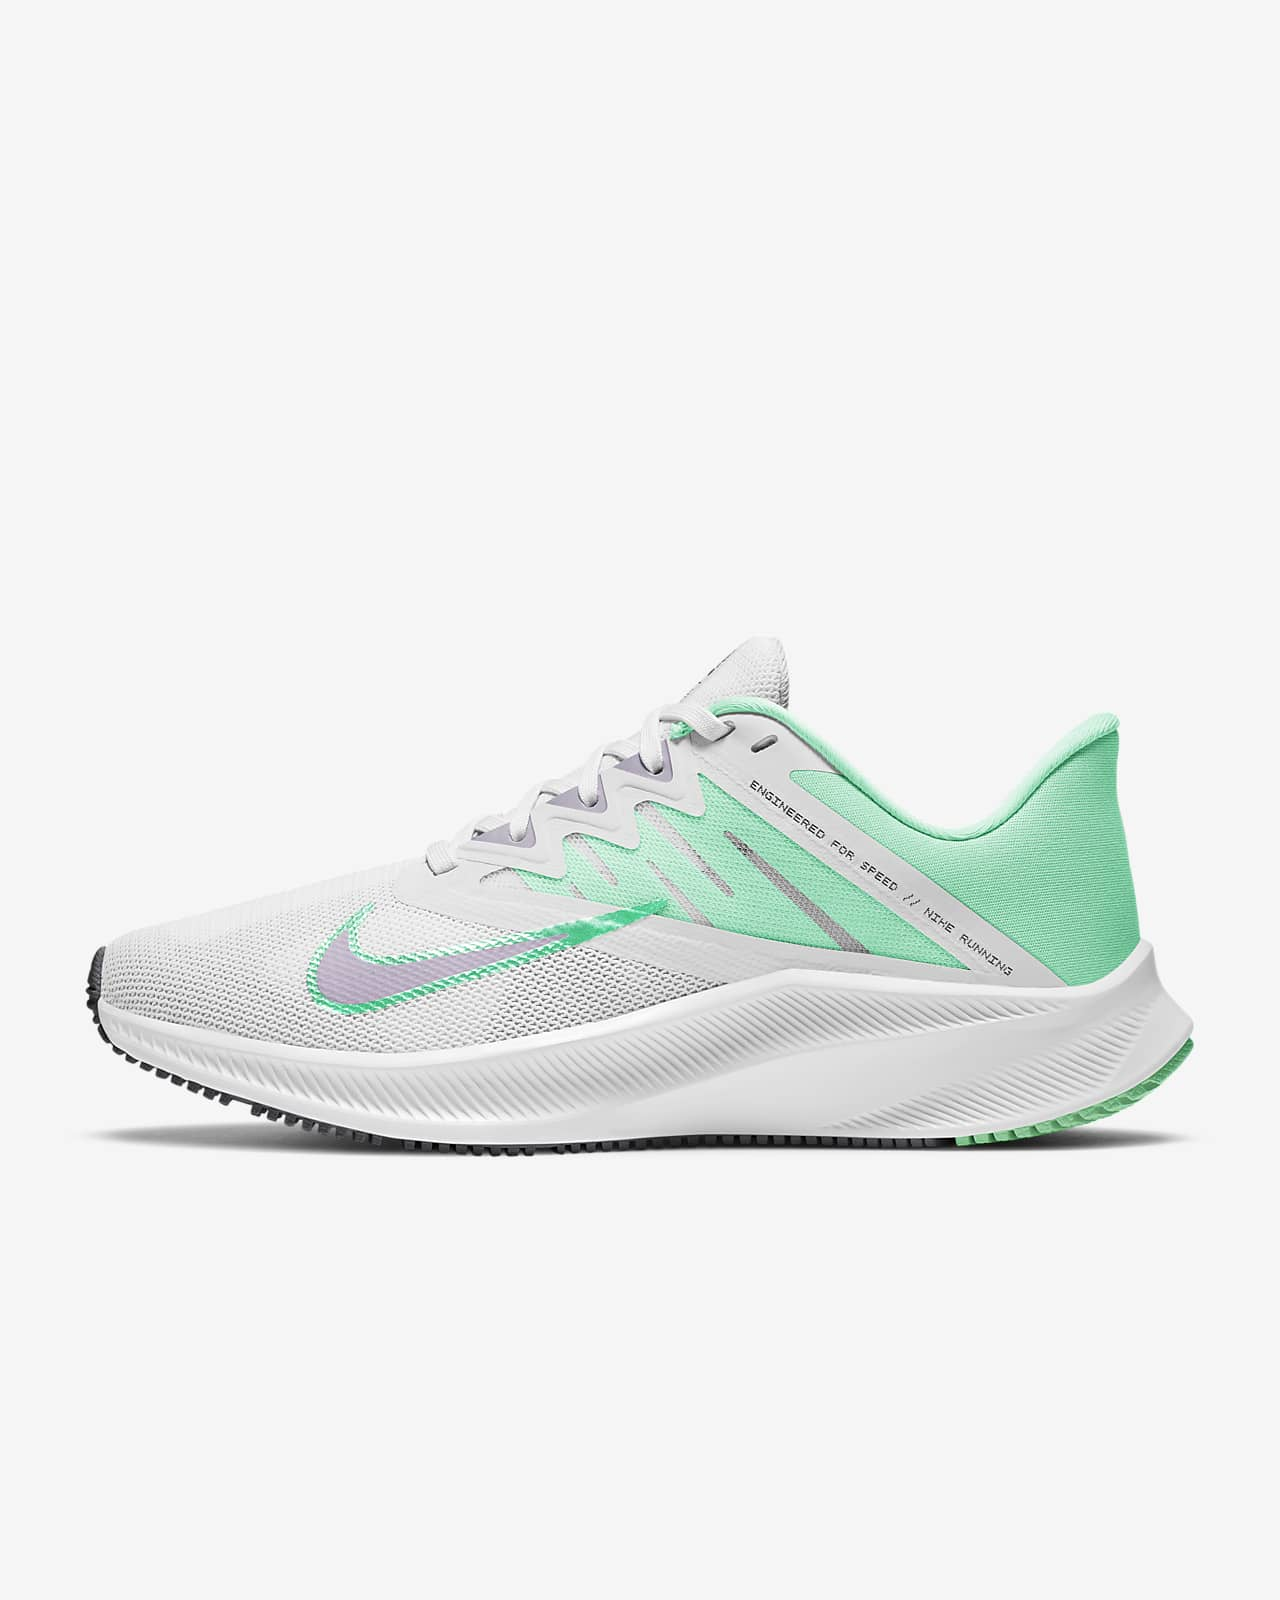 Nike Quest 3 Women's Road Running Shoes